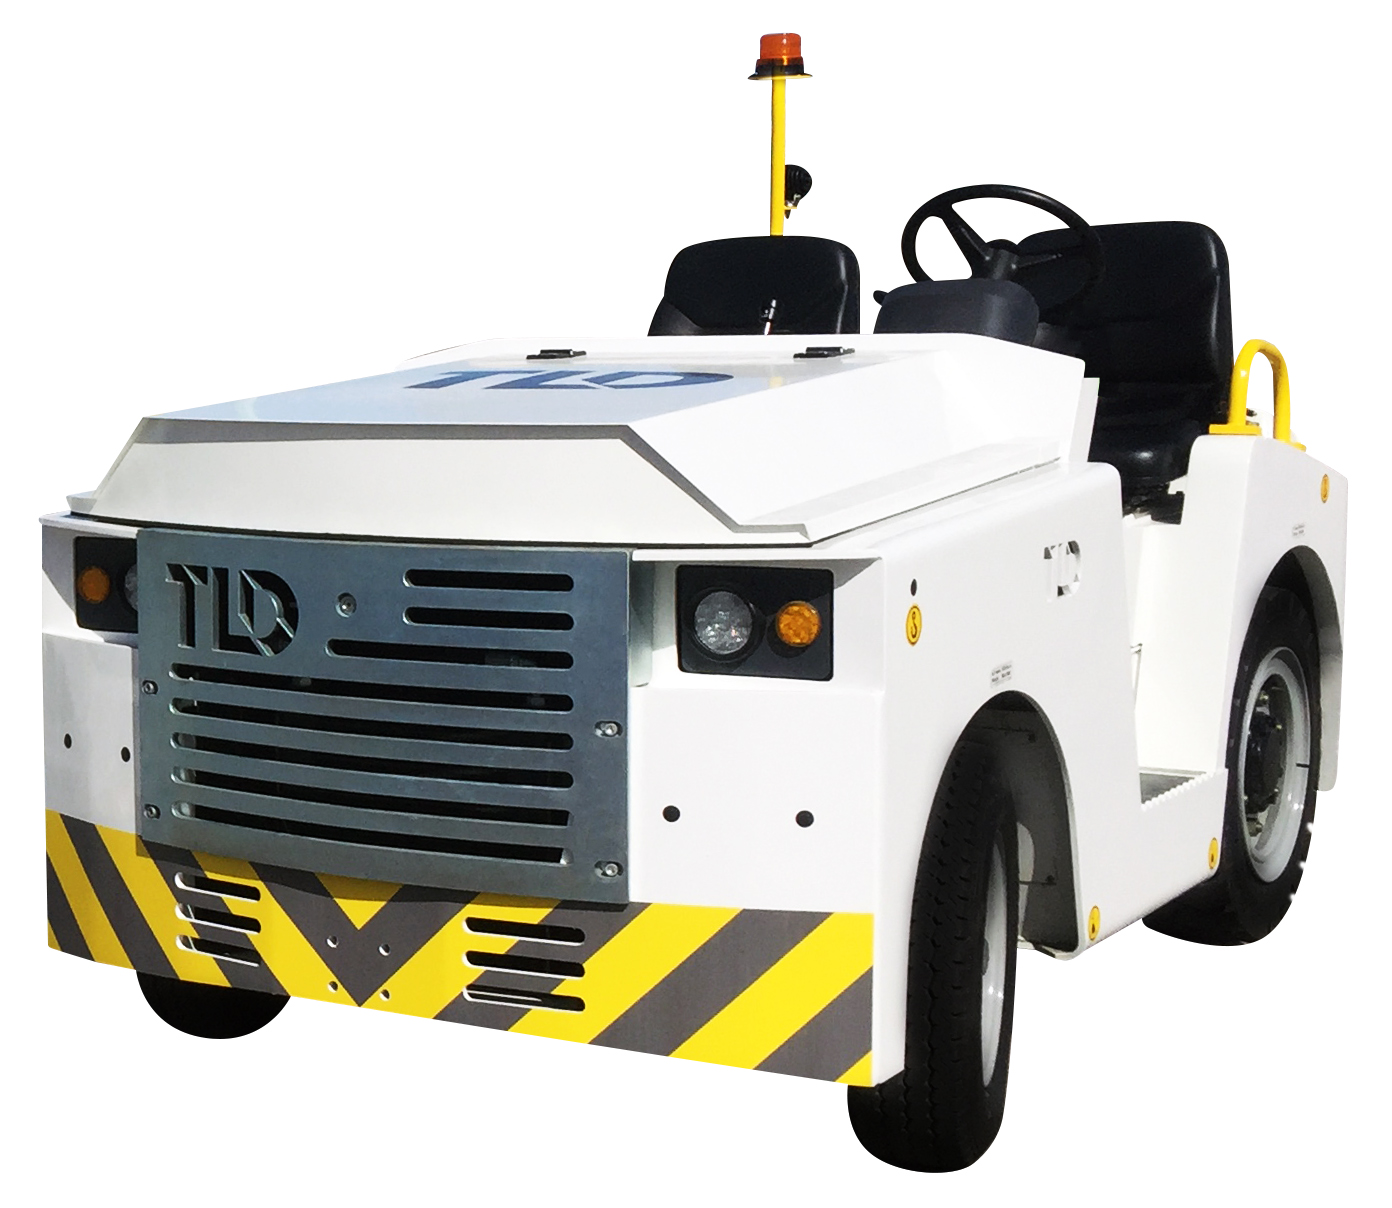 Diesel Operated Tow Tractor : Tld jst baggage cargo tow tractor diesel gas lpg